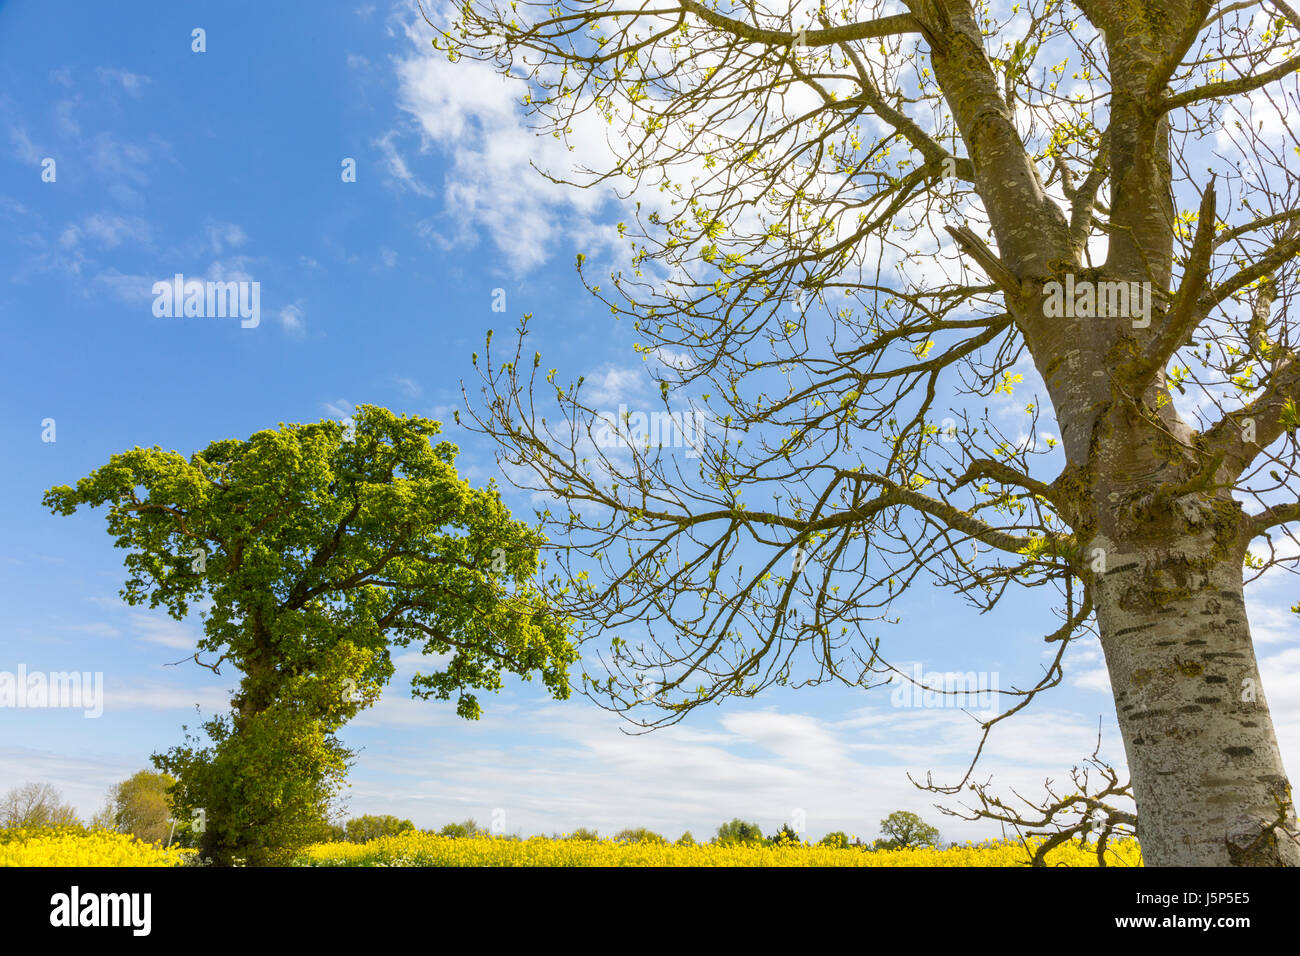 Weather lore 'oak before ash in for a splash'. Oak tree (left) and ash tree (right). Hoxne, Suffolk. - Stock Image